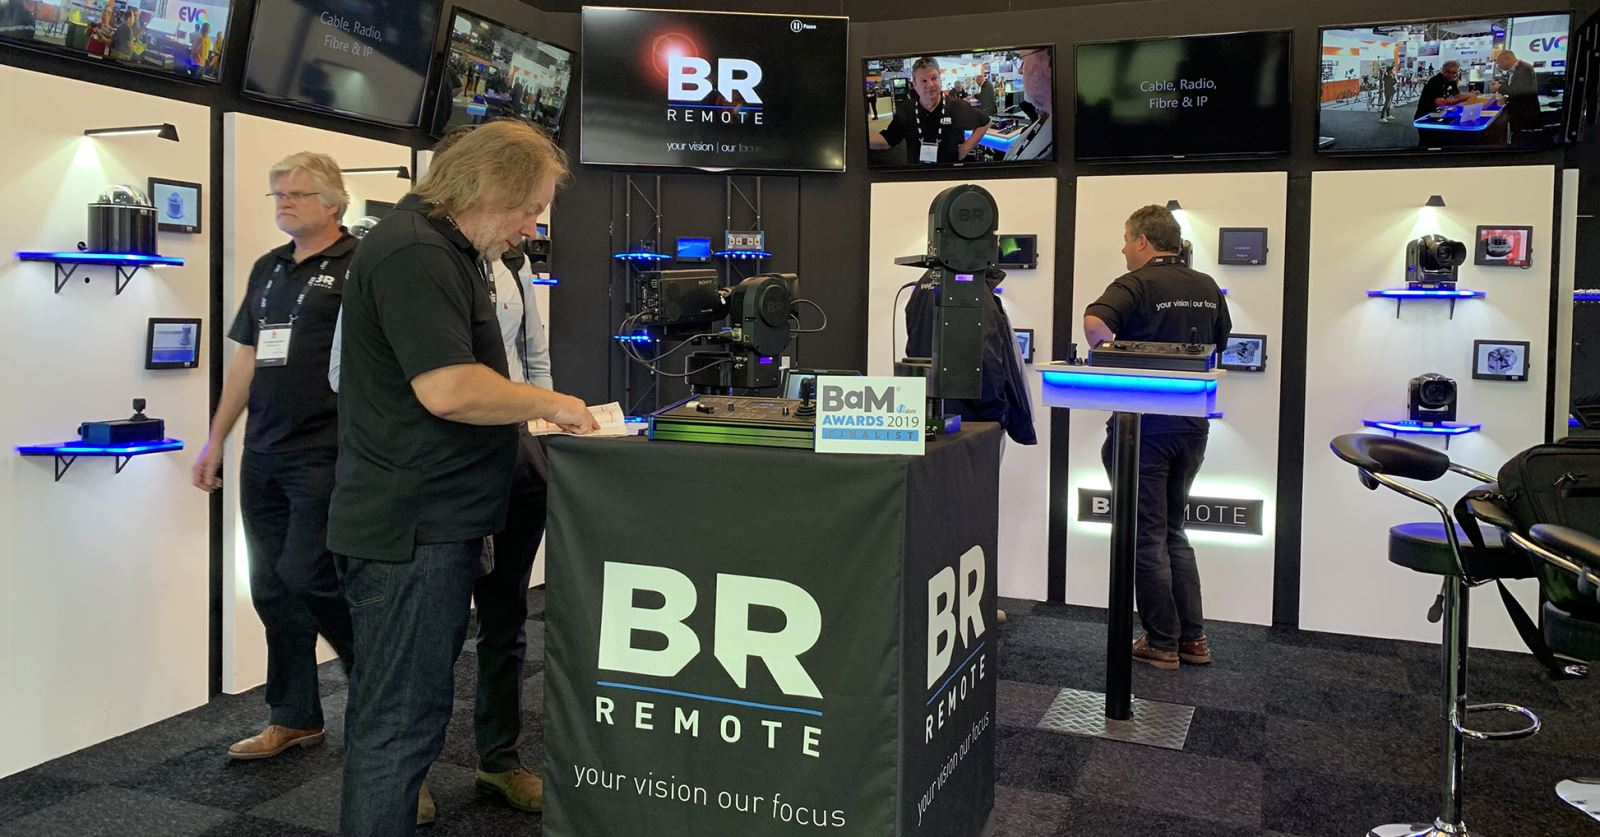 """Your vision, our focus"" – the mission statement for GTC sponsor BR Remote at IBC2019"